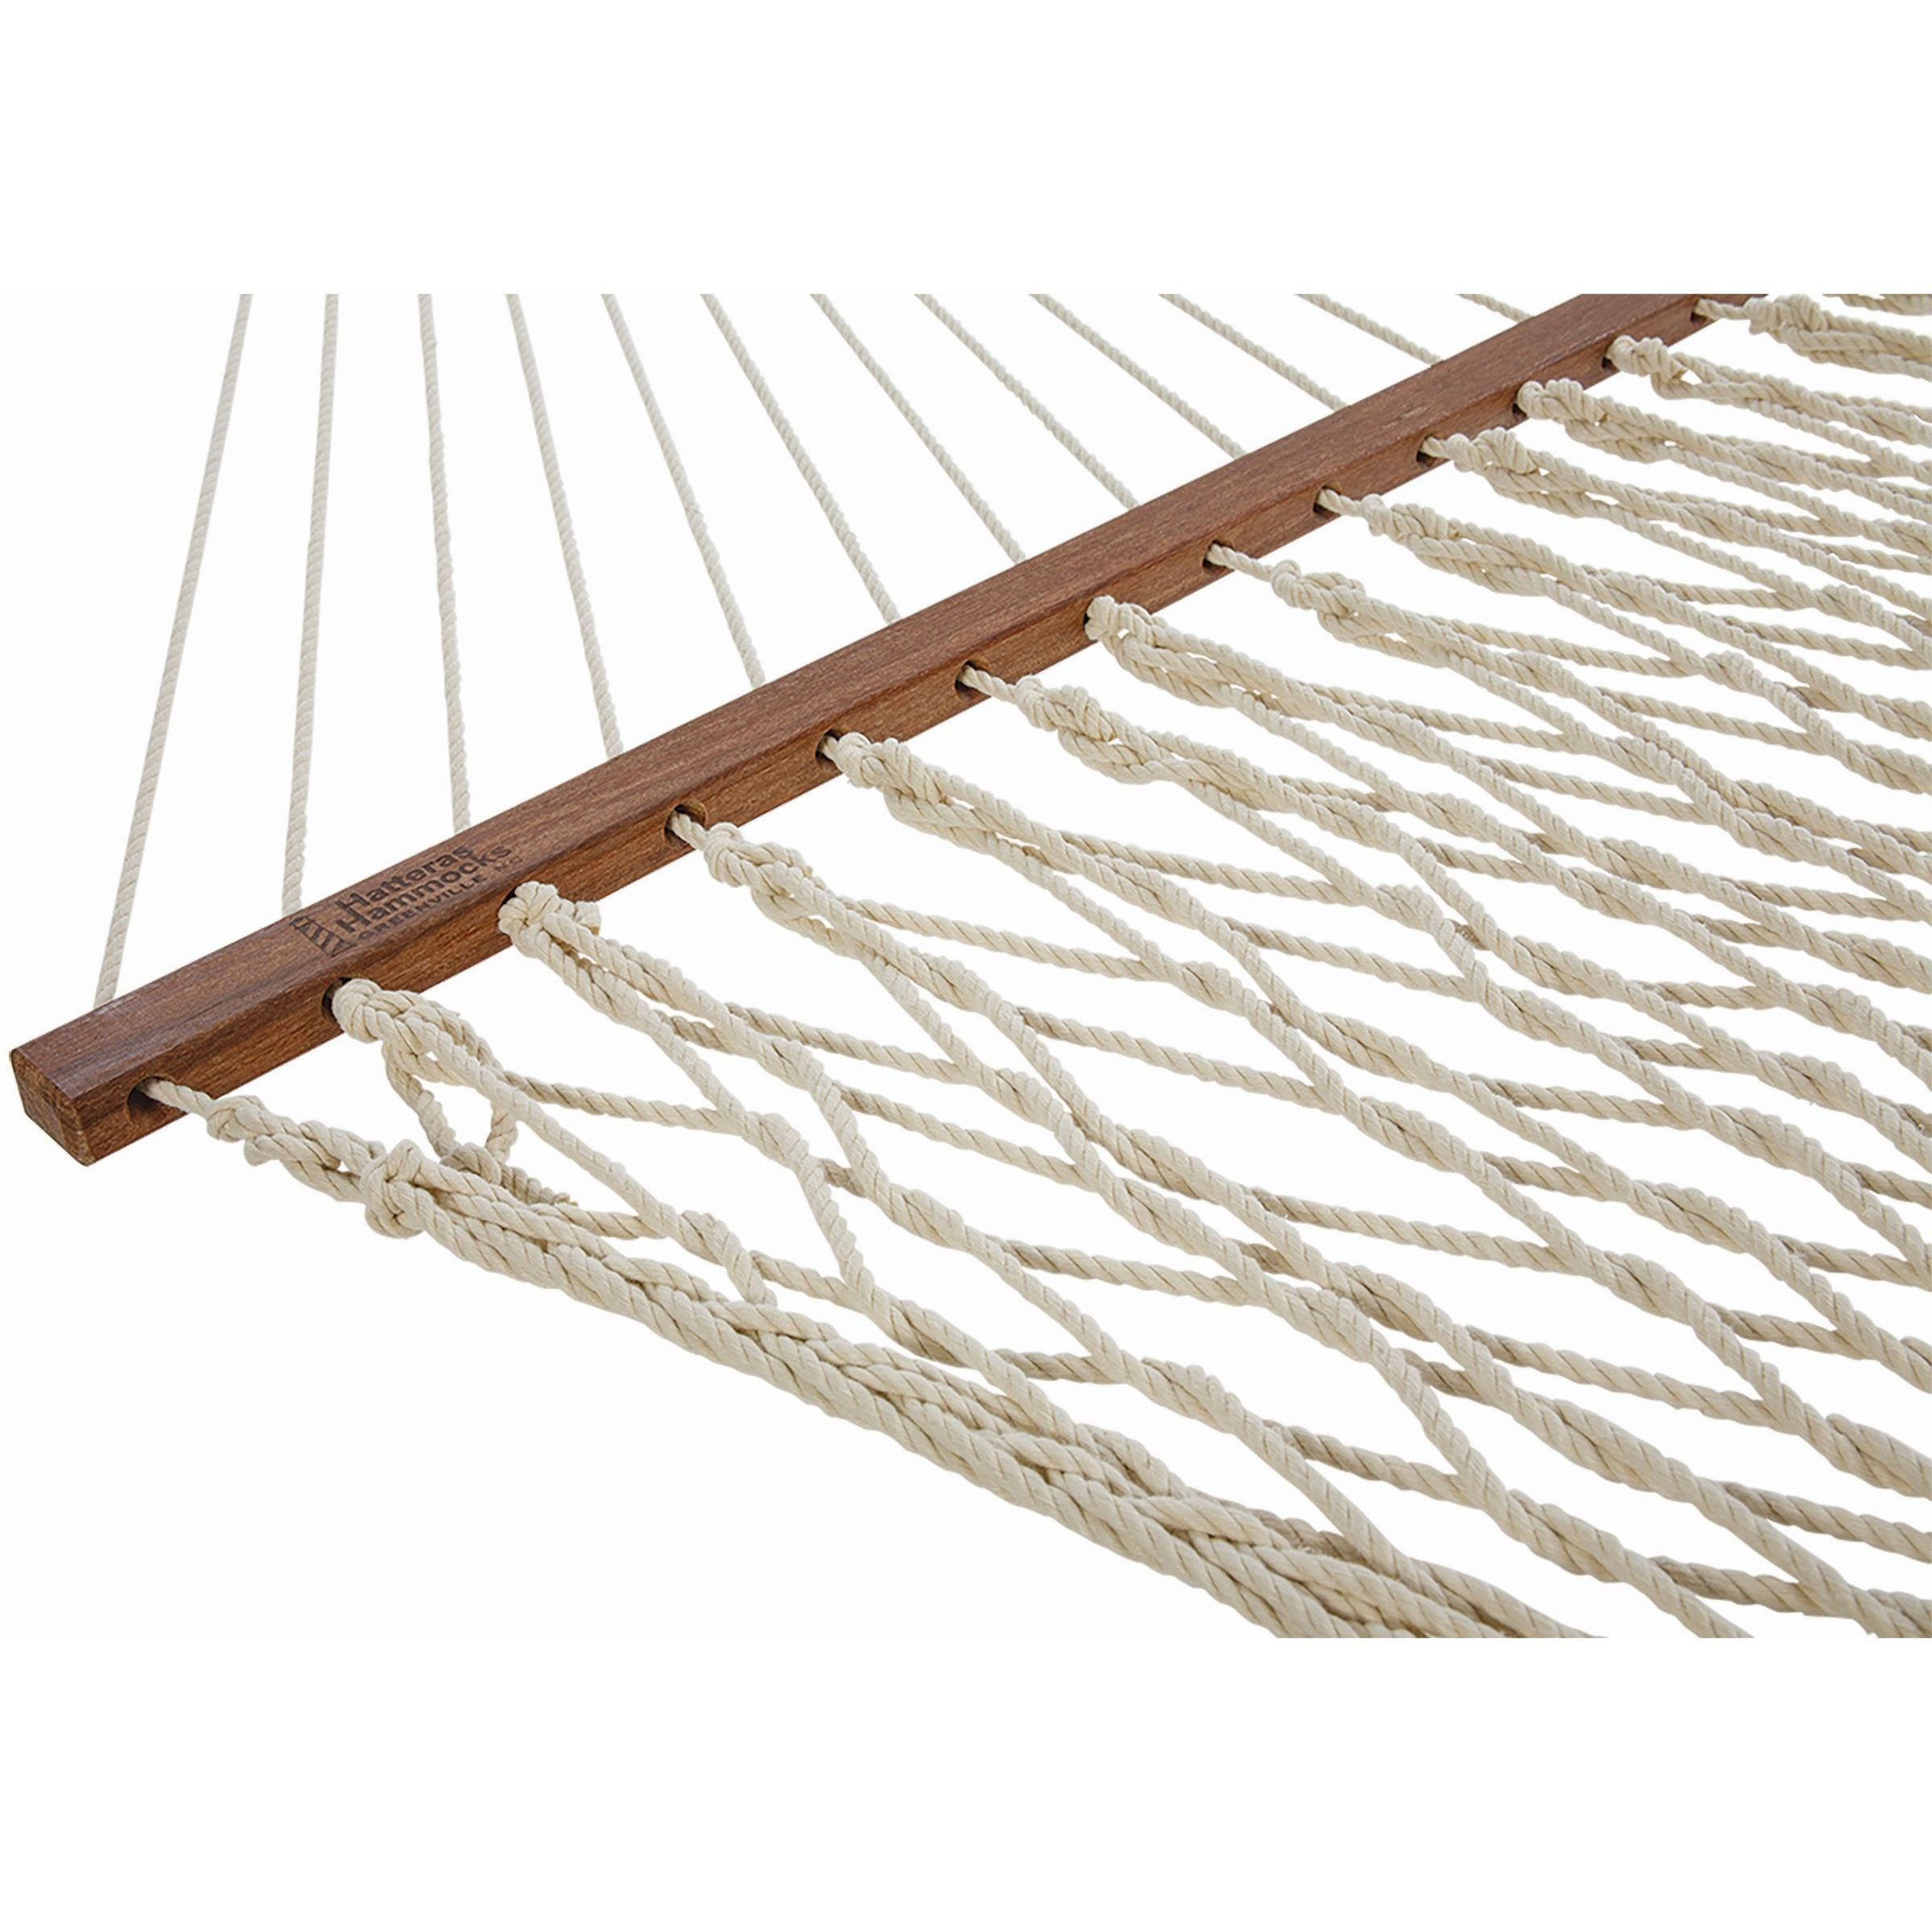 Medium image of pawleys island hatteras duracord rope deluxe coastal hammock